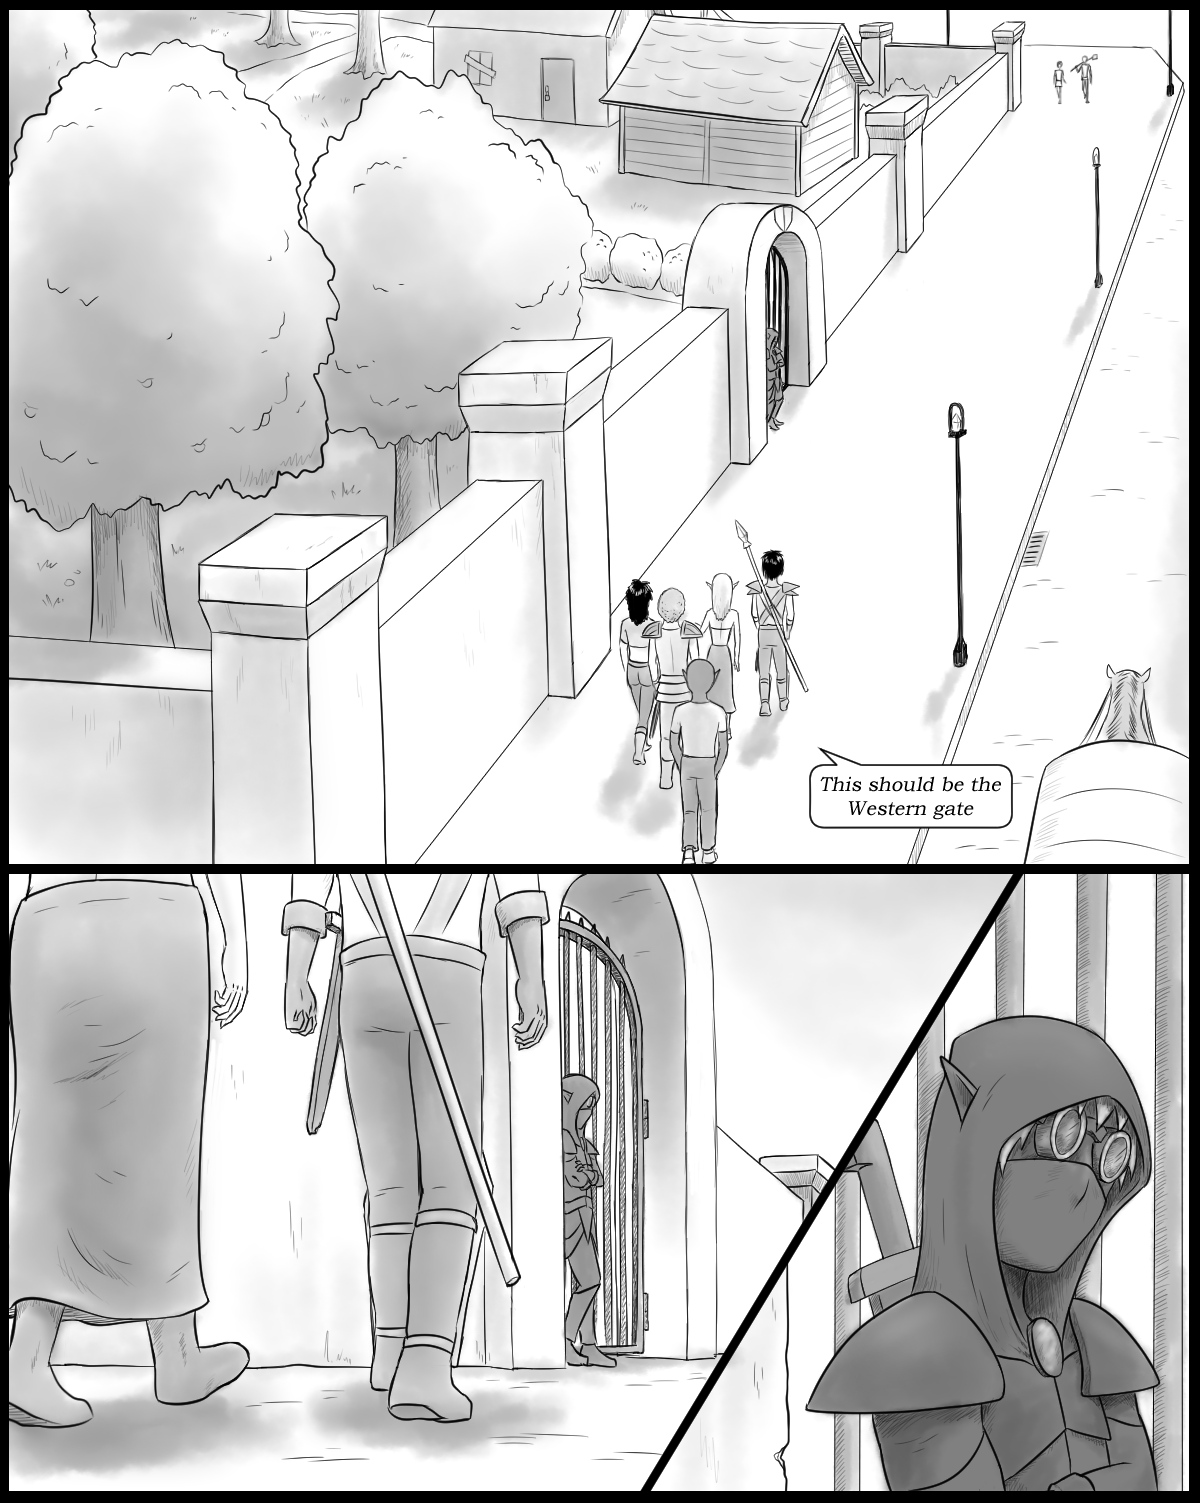 Page 72 - The Western gate